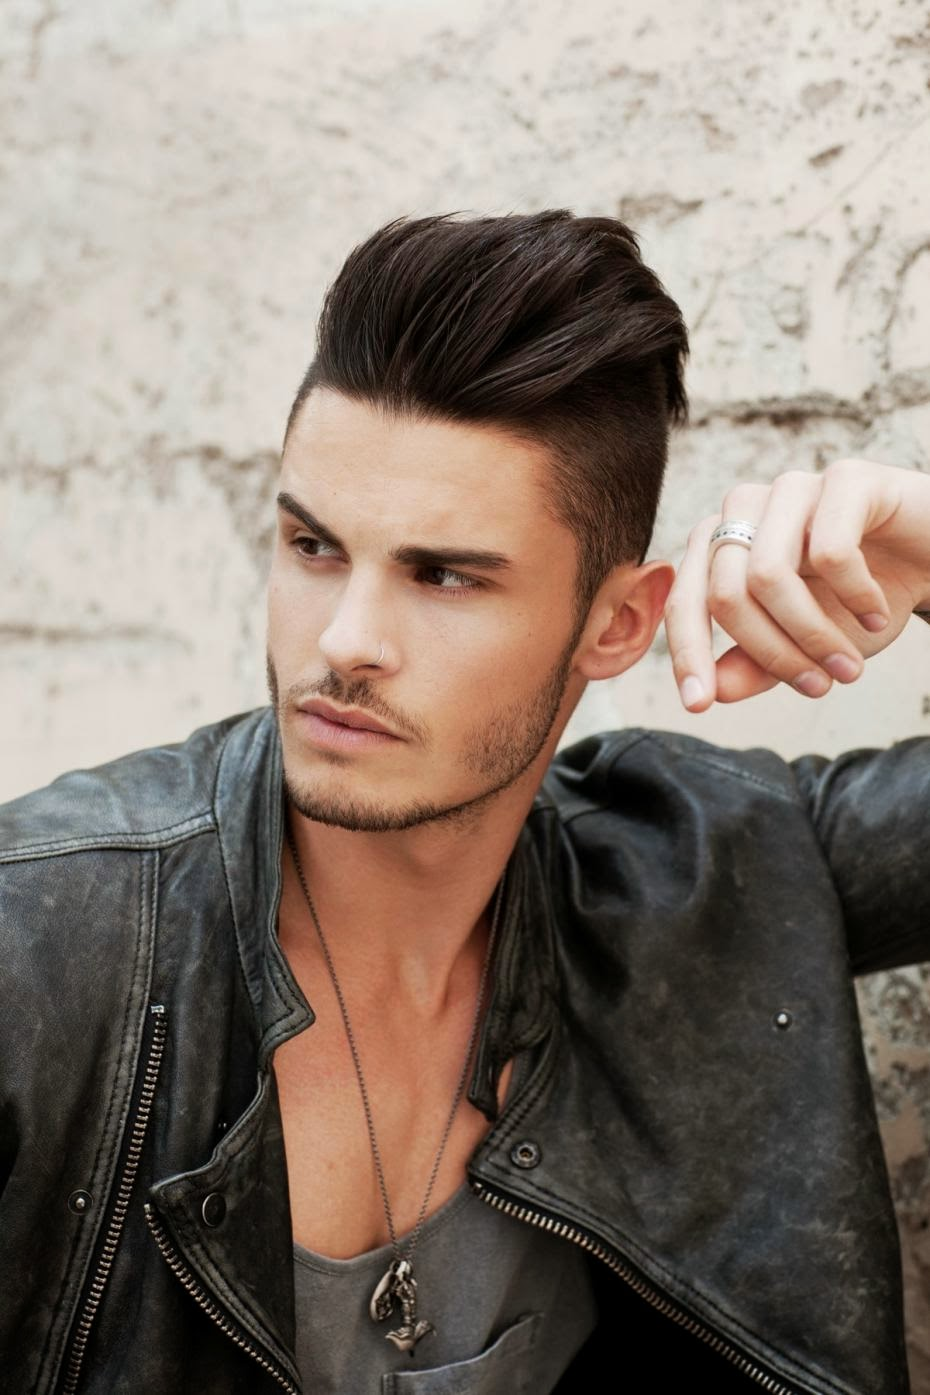 Top Male Models On Instagram: THE HOT TOP MALE MODEL BAPTISTE GIABICONI